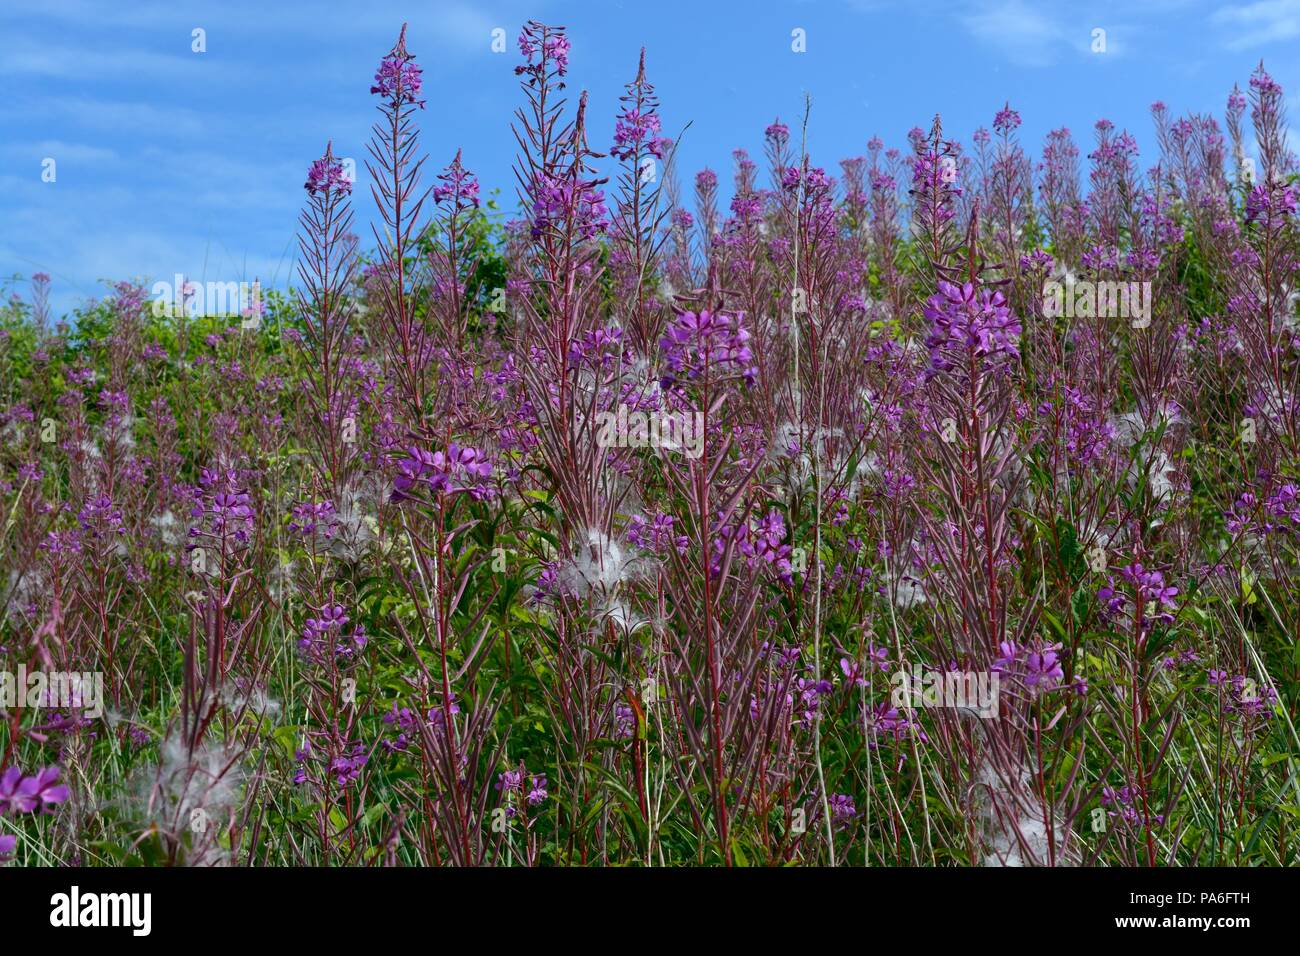 Rosebay willow herb Chamaenerion angustifolium flowers against a blue sky Stock Photo